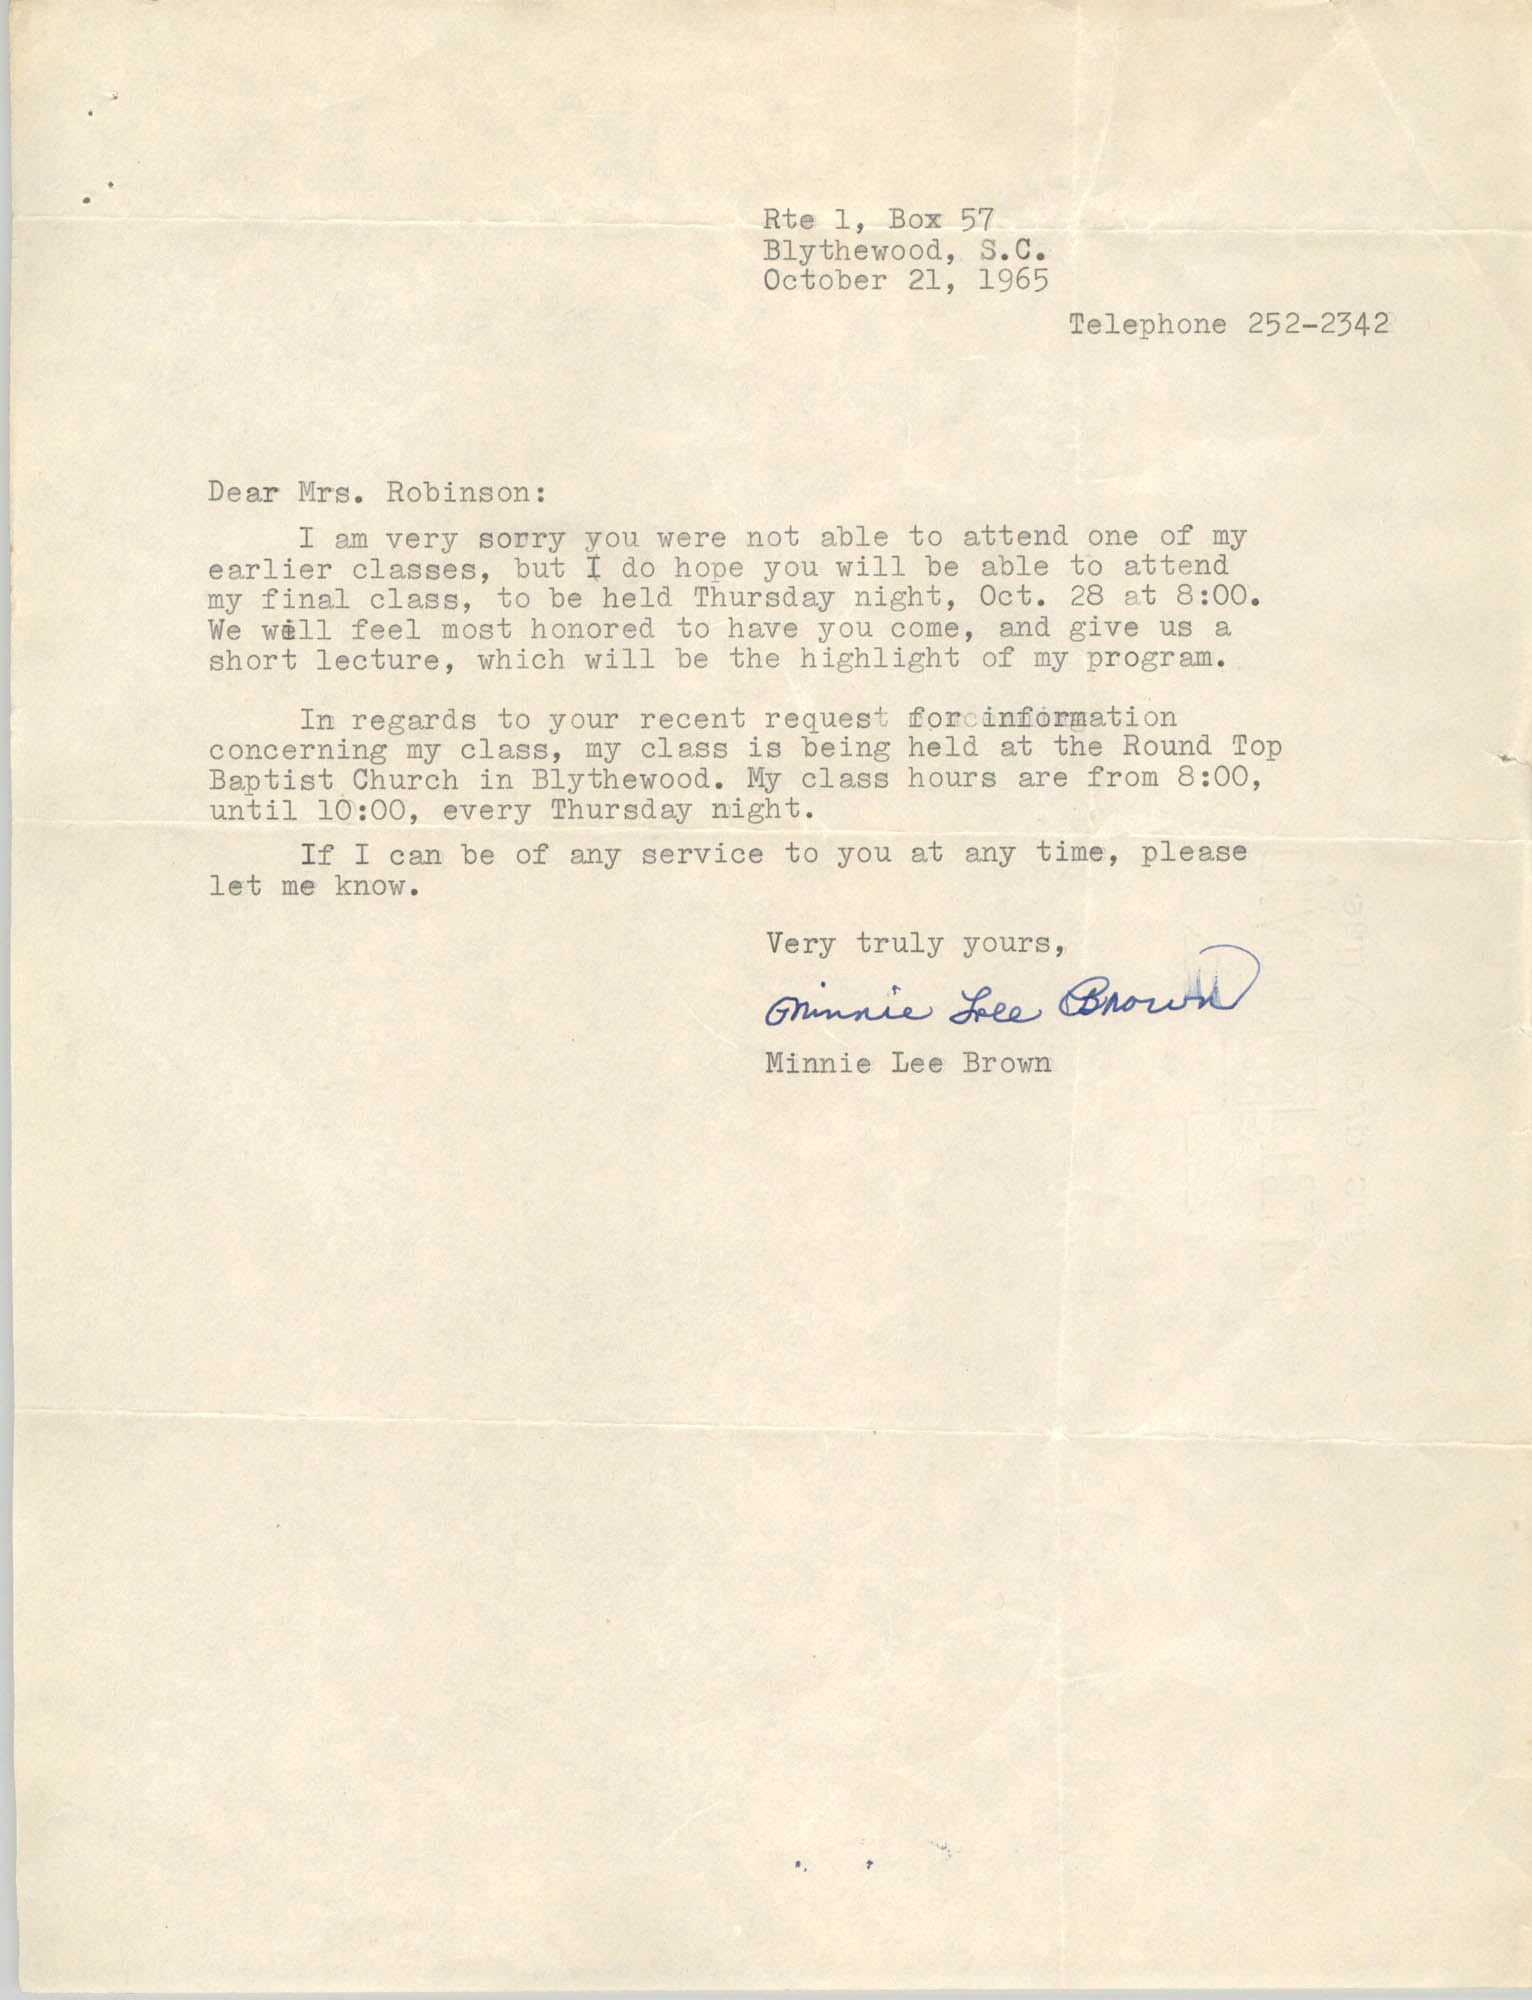 Letter from Minnie Lee Brown to Bernice Robinson, October 21, 1965